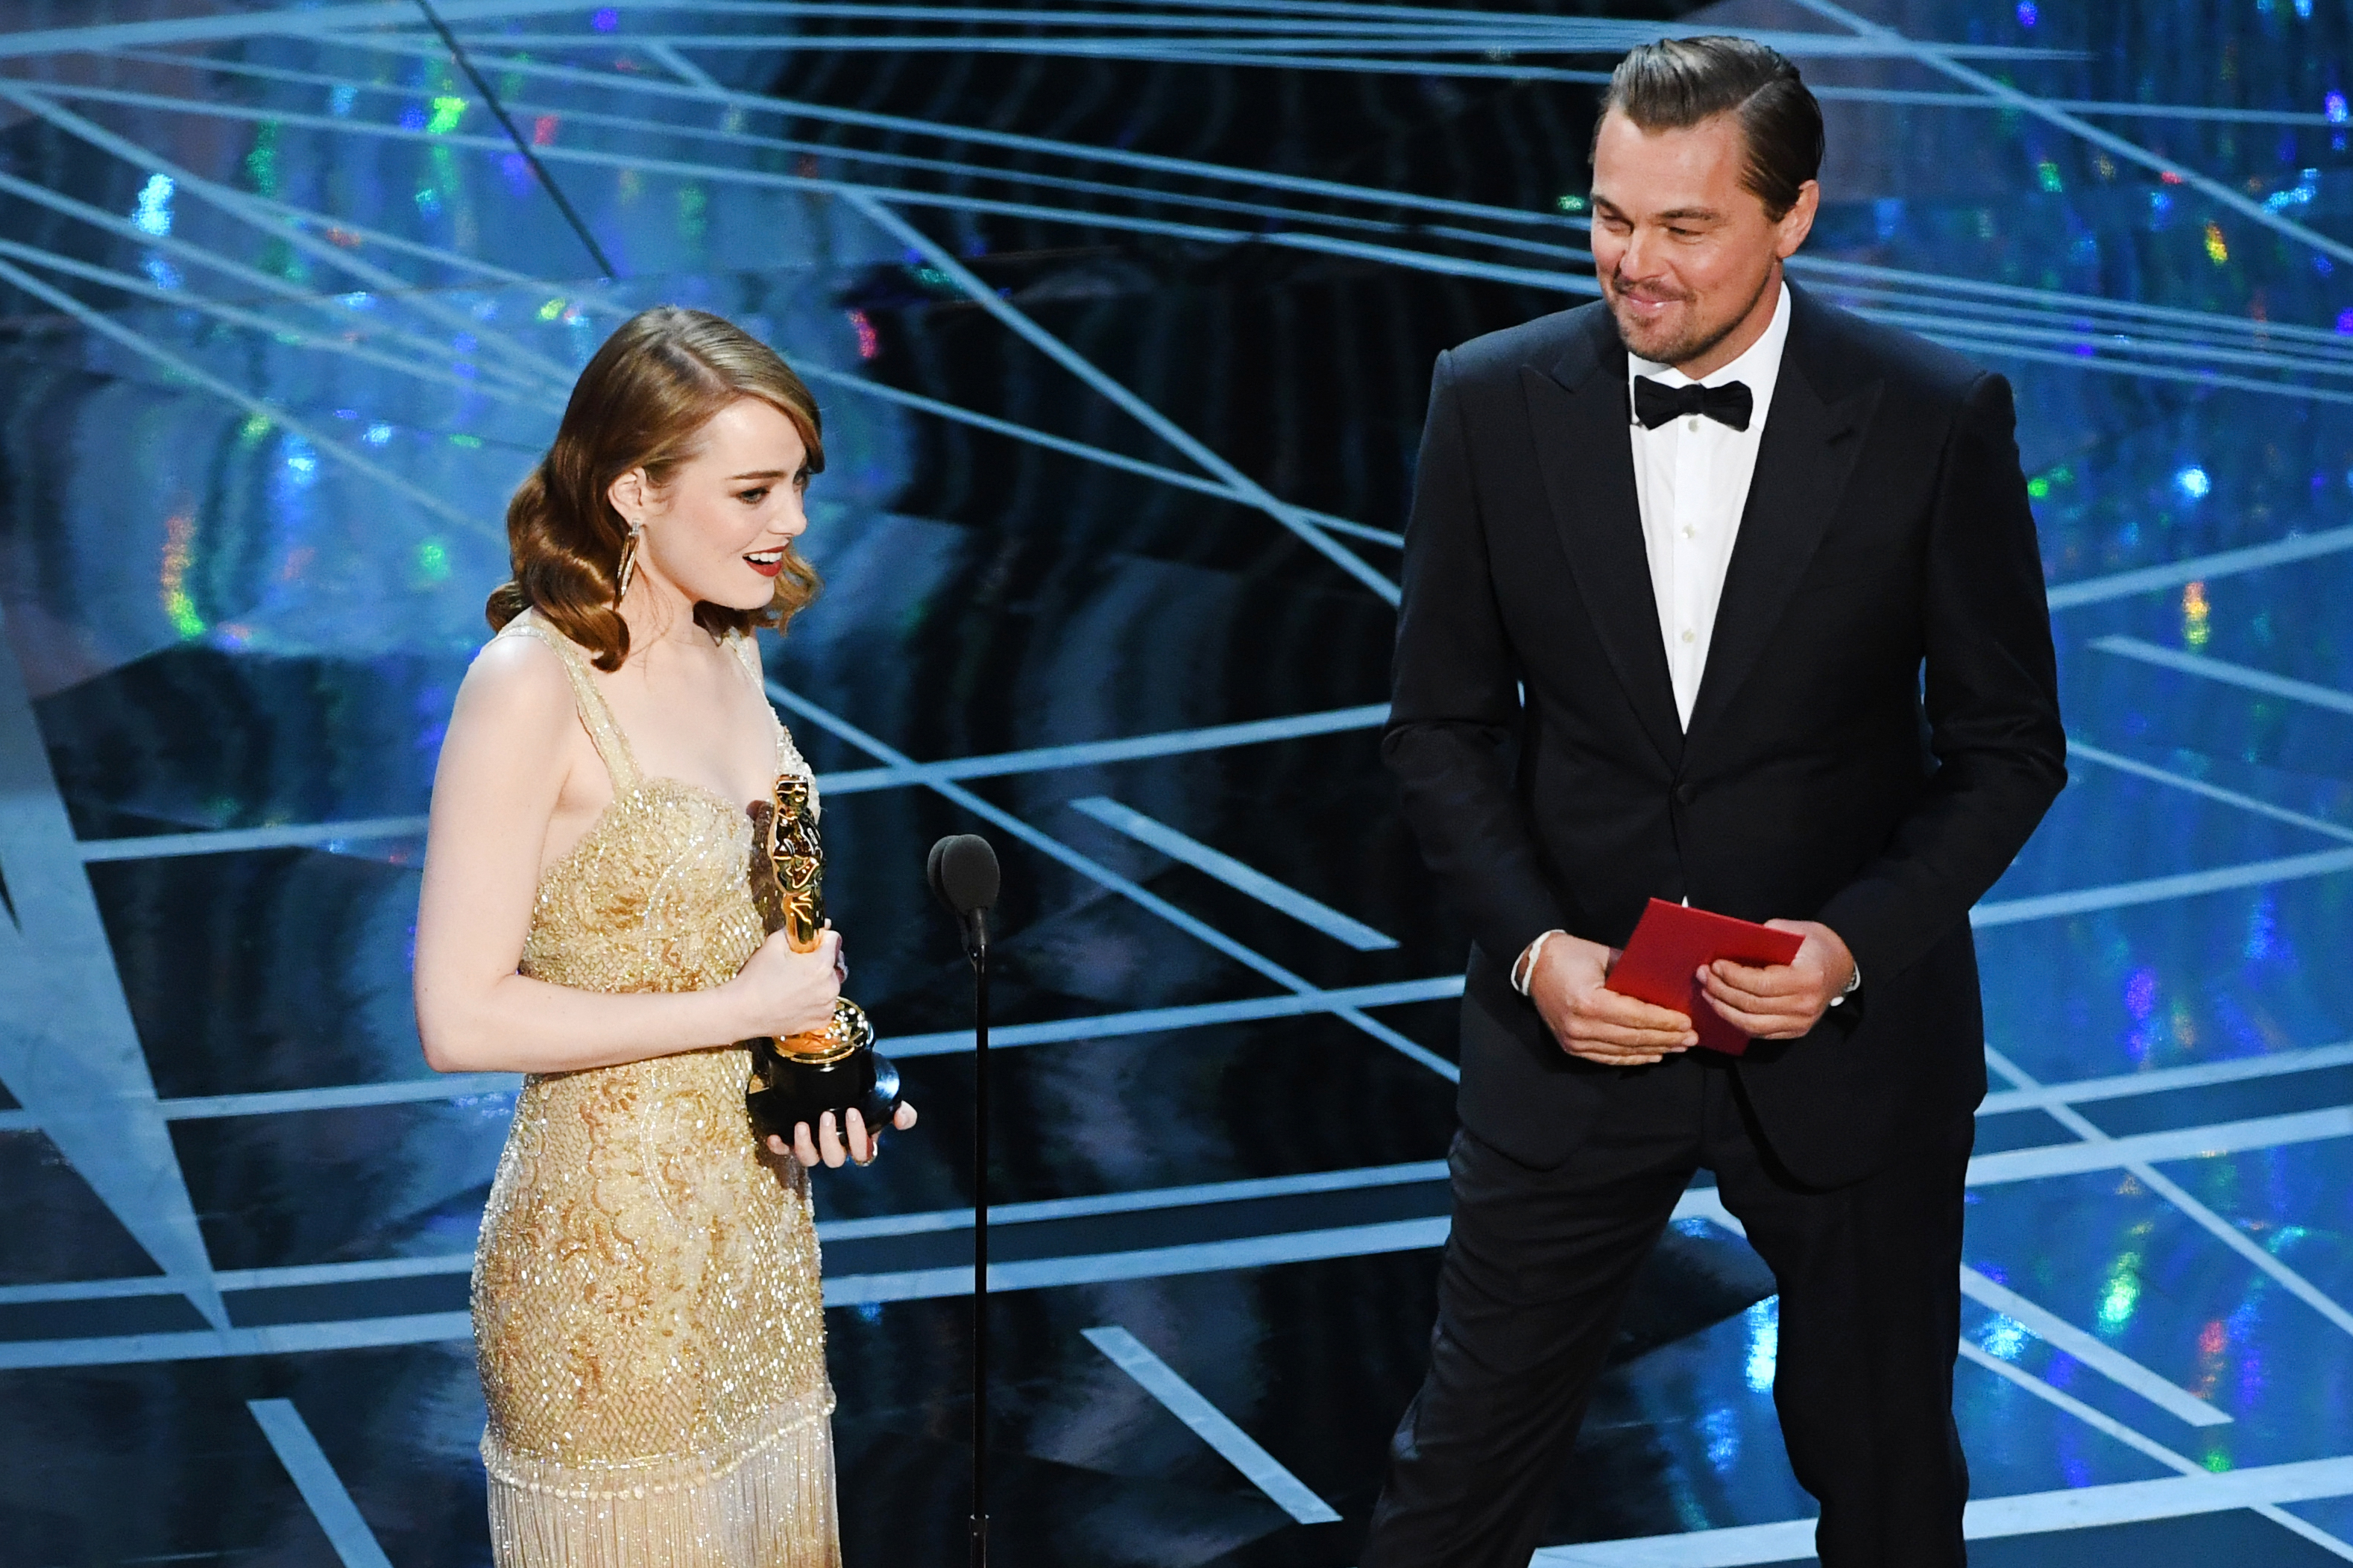 Emma Stone accepts Best Actress for La La Land from Leonardo DiCaprio during the 89th Annual Academy Awards, on Feb. 26, 2017 in Hollywood, Calif.